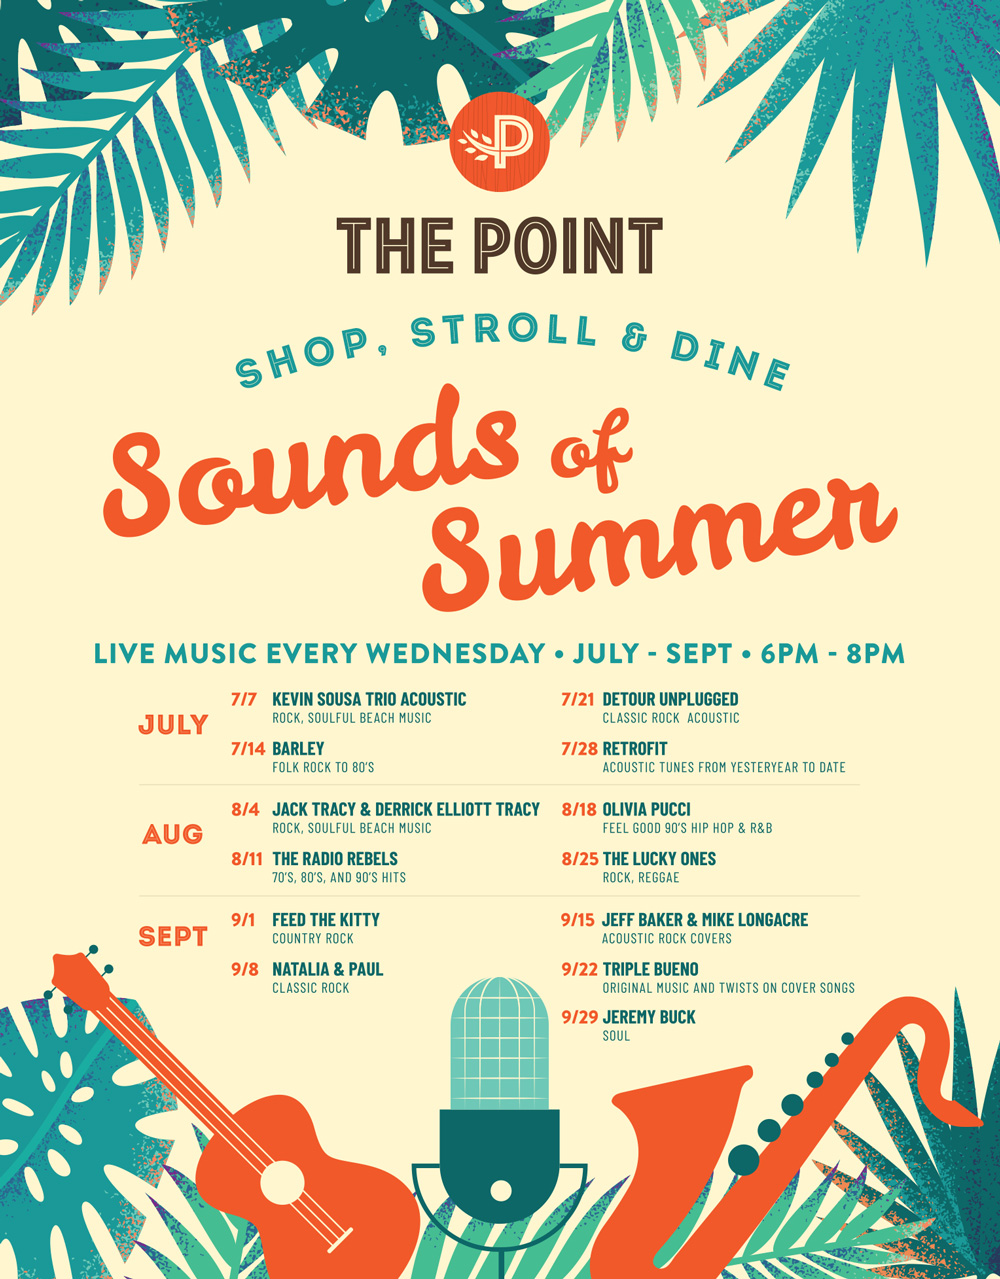 The Point presents a free summer concert series in El Segundo